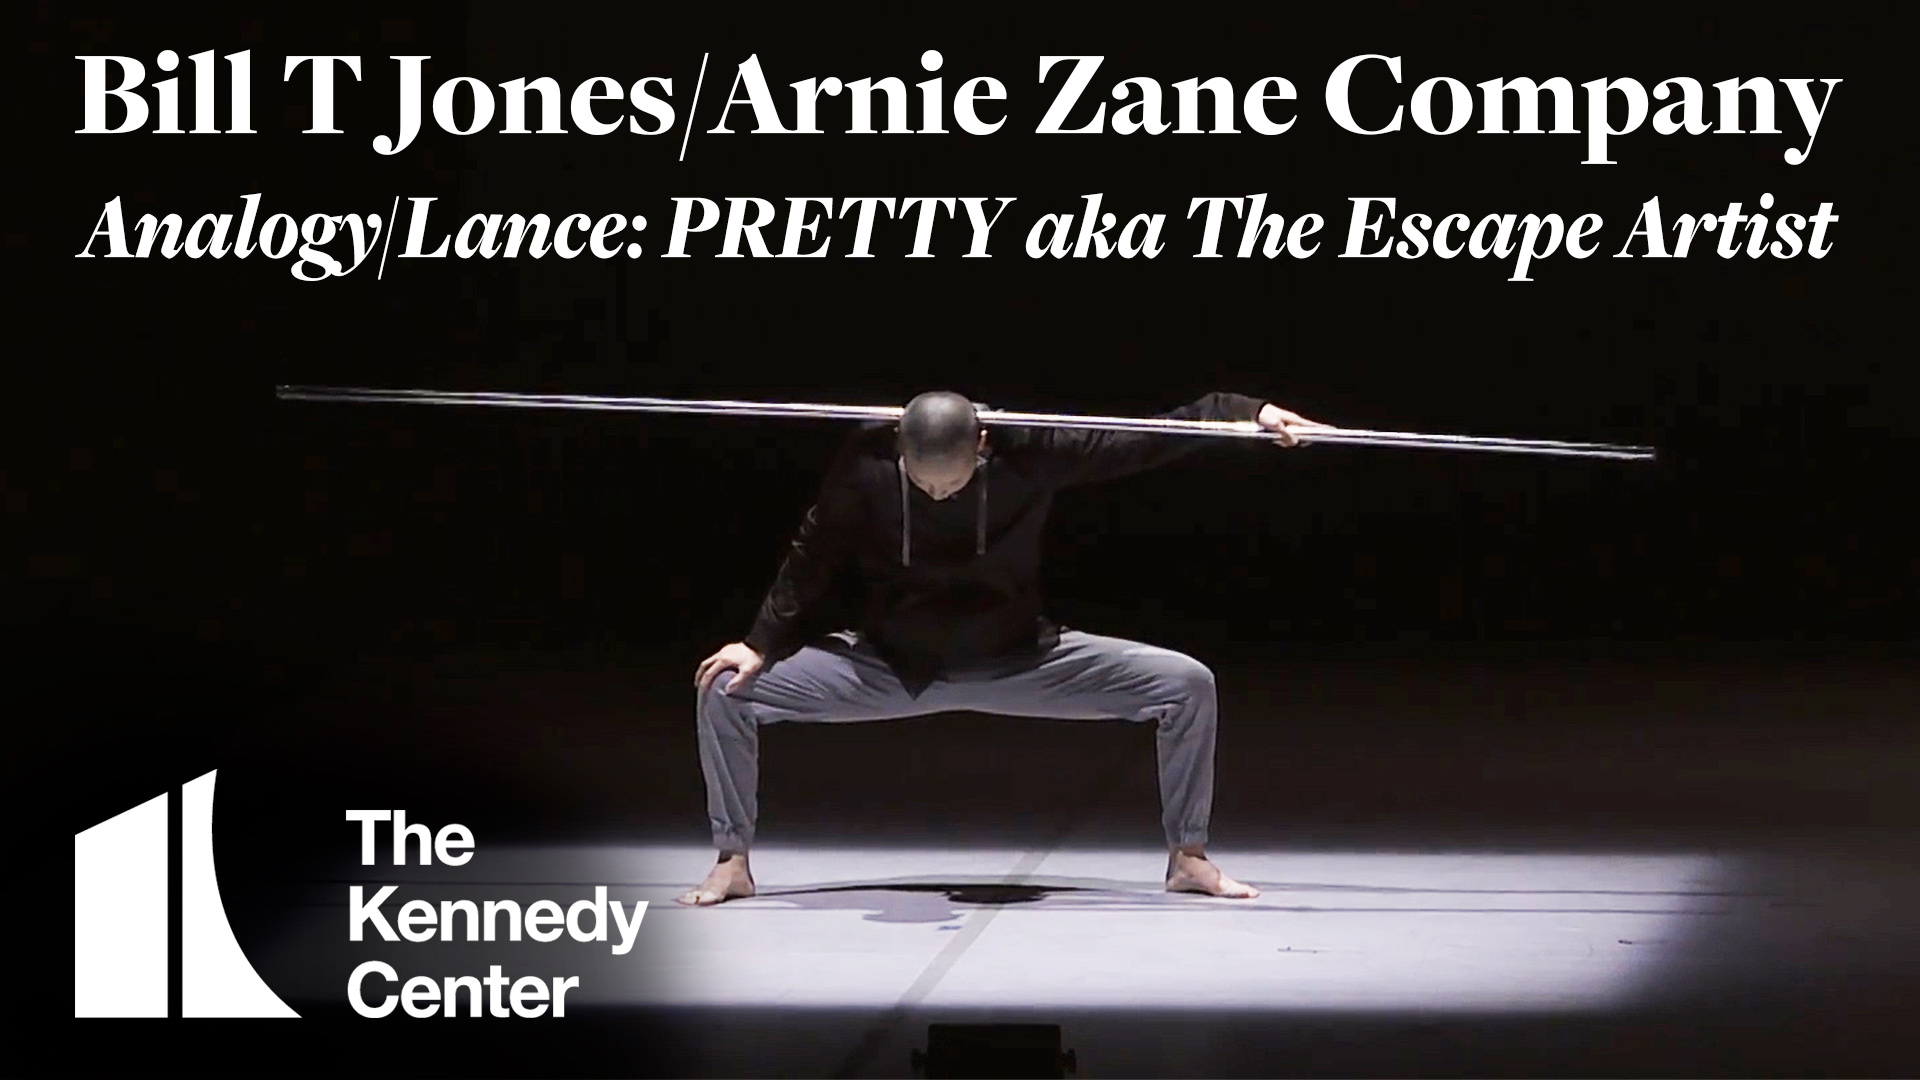 Bill T. Jones/Arnie Zane Company: Analogy/Lance: Pretty aka the Escape Artist | The Kennedy Center